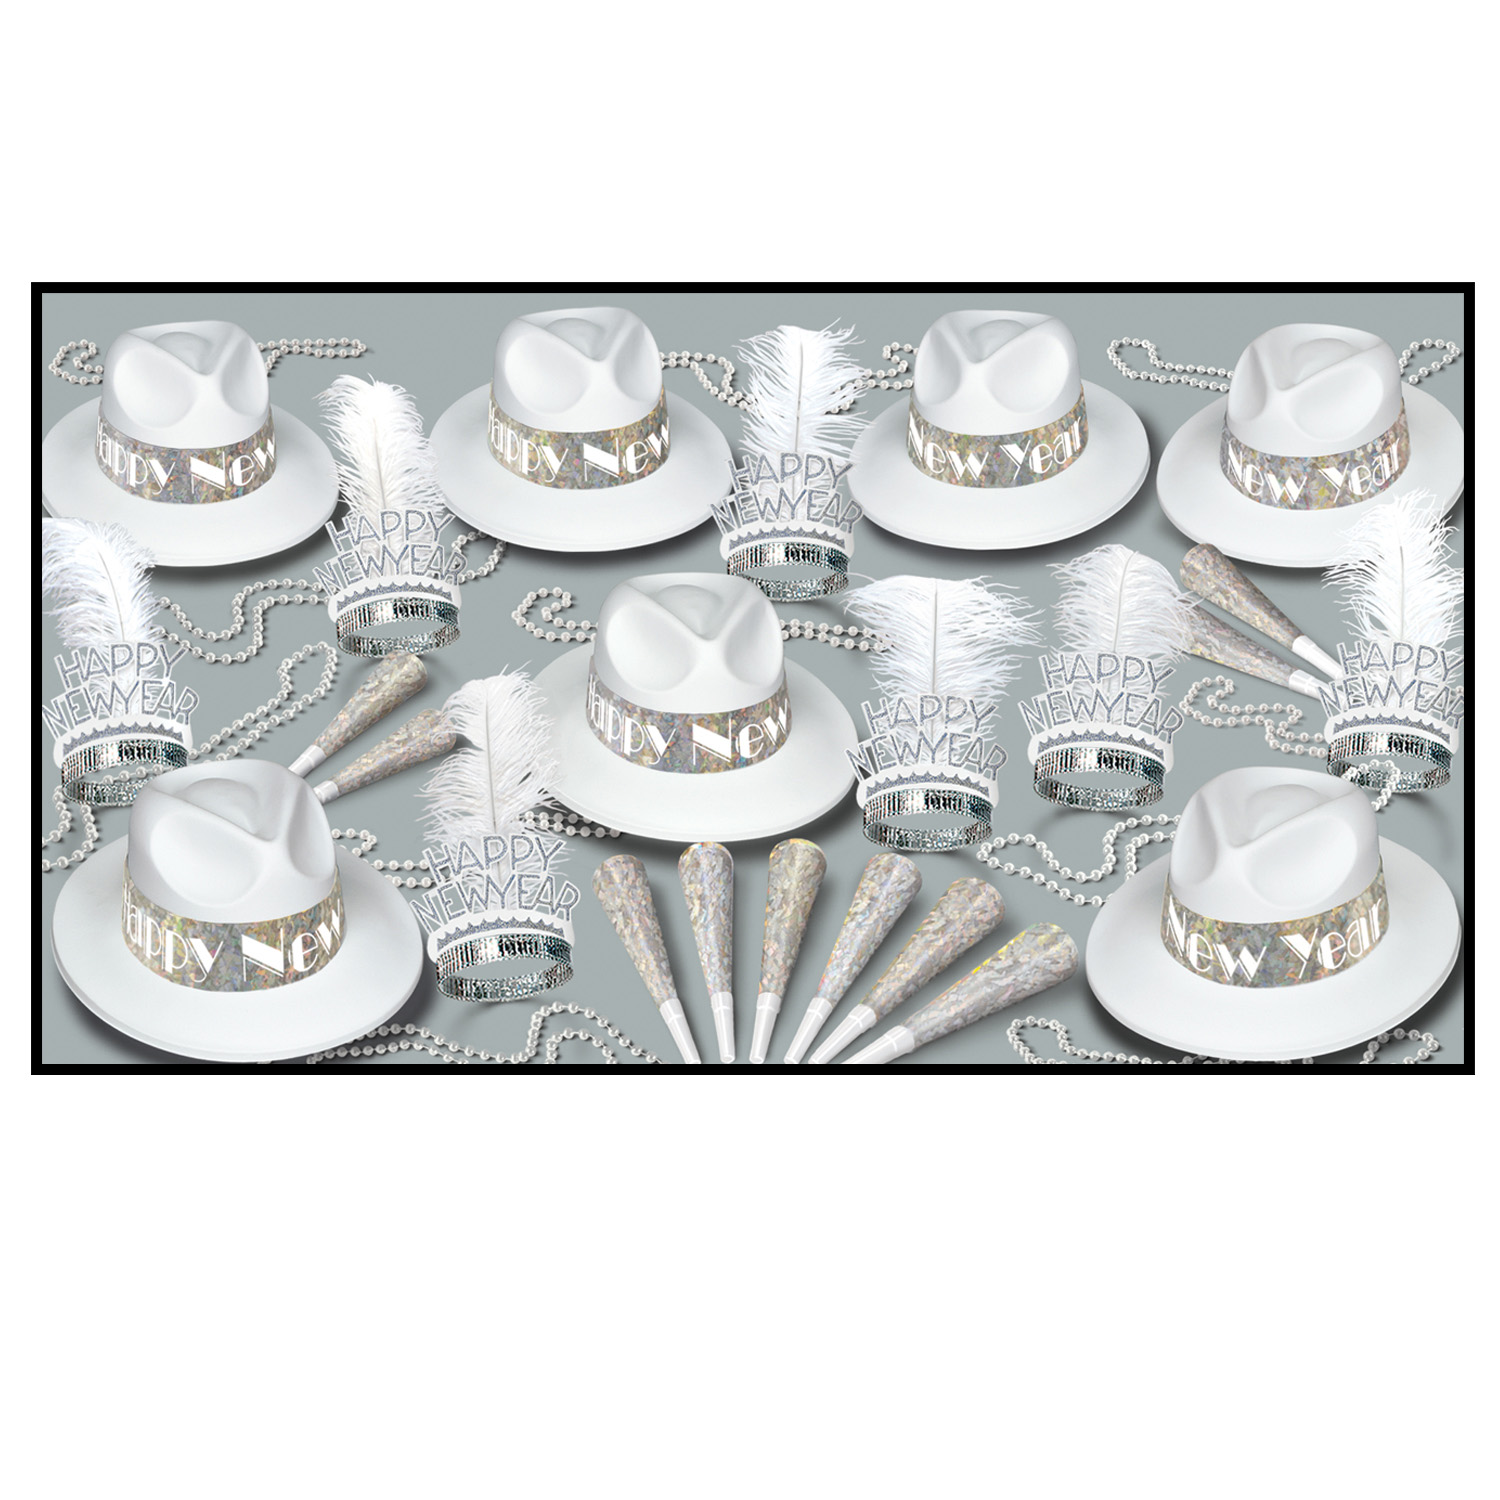 LA Swing Silver Asst for 50 - Party Accessory Sets